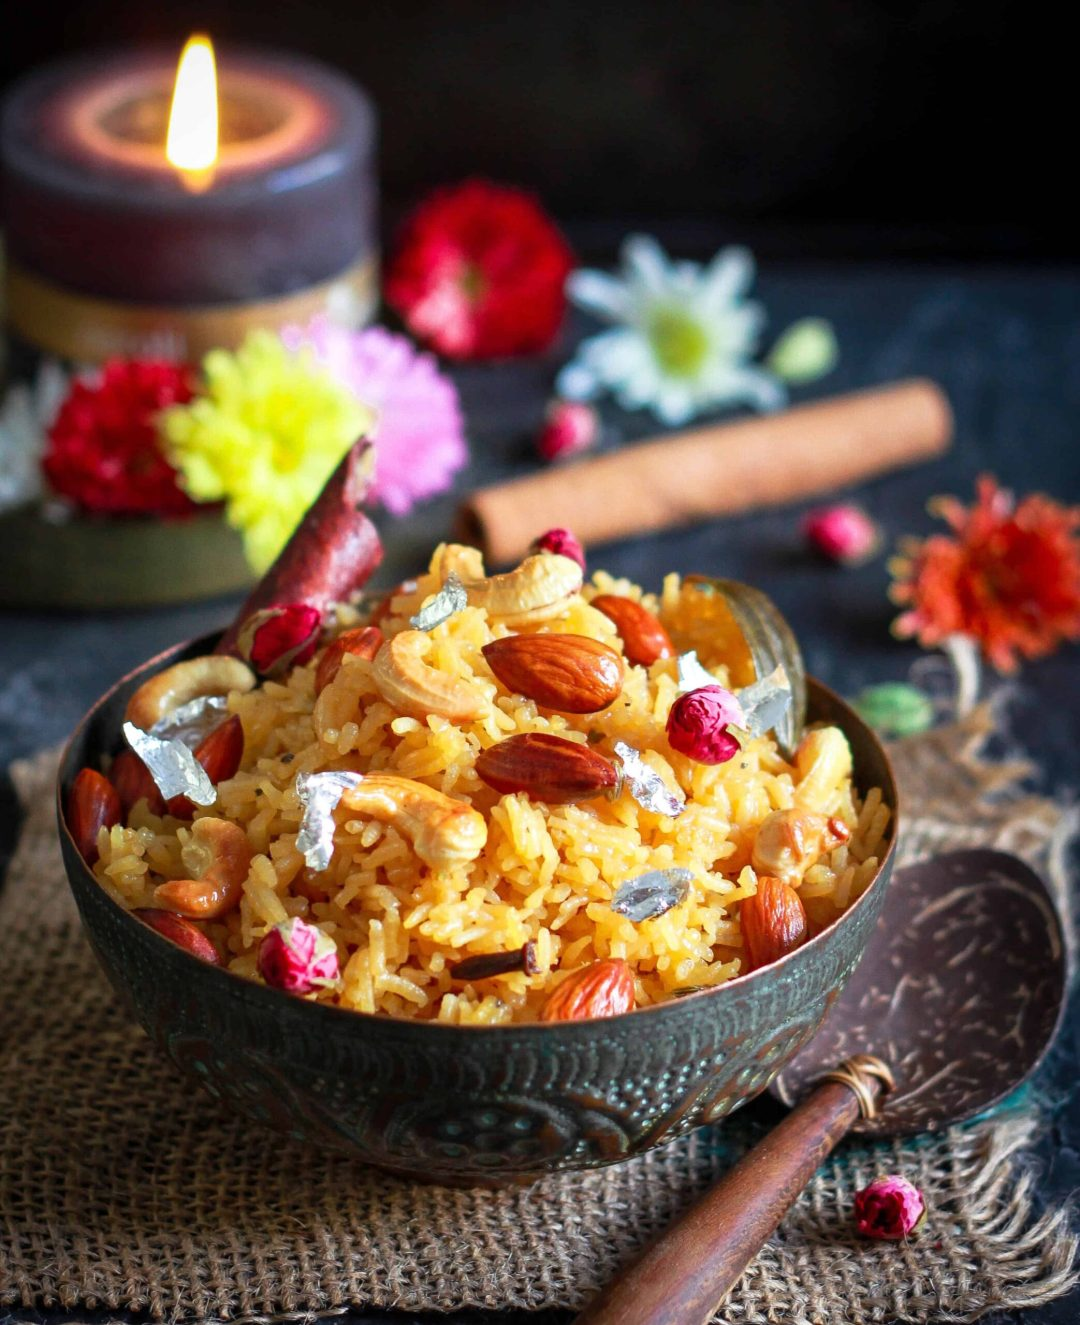 Jaggery Rice Gur Wale Chawal Indian Festive Dessert